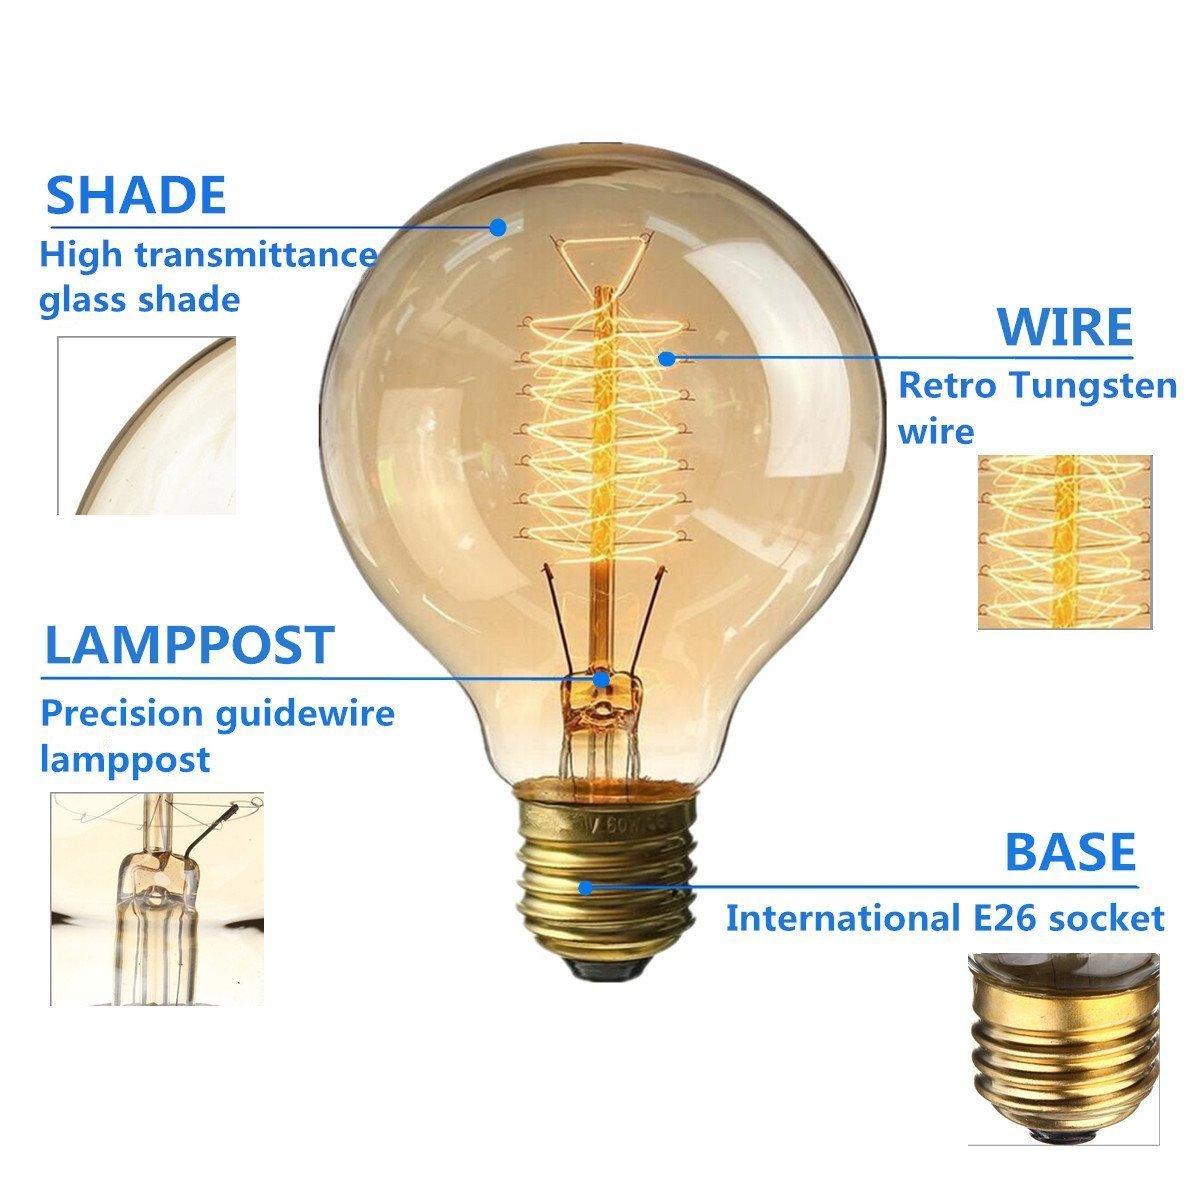 FBA/_KINGSOCecv714 KINGSO Vintage Edison Bulb 60W Incandescent Antique Dimmable Light Bulb Dimmable for Home Light Fixtures Squirrel Cage Filament E27 Base G80 110V 4 Pack